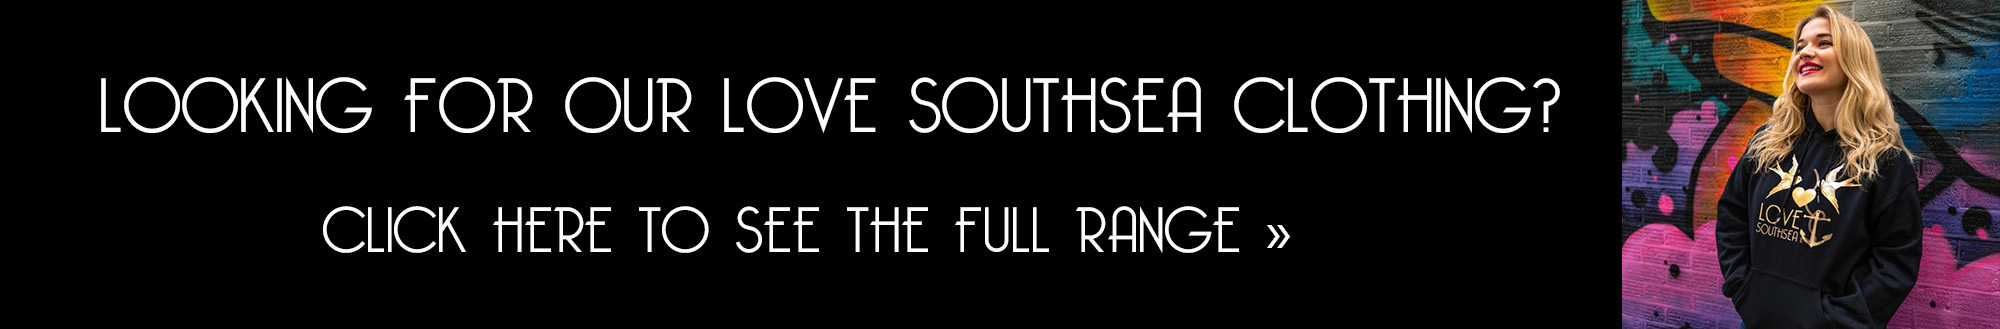 LOVE SOUTHSEA MERCH AND CLOTHING